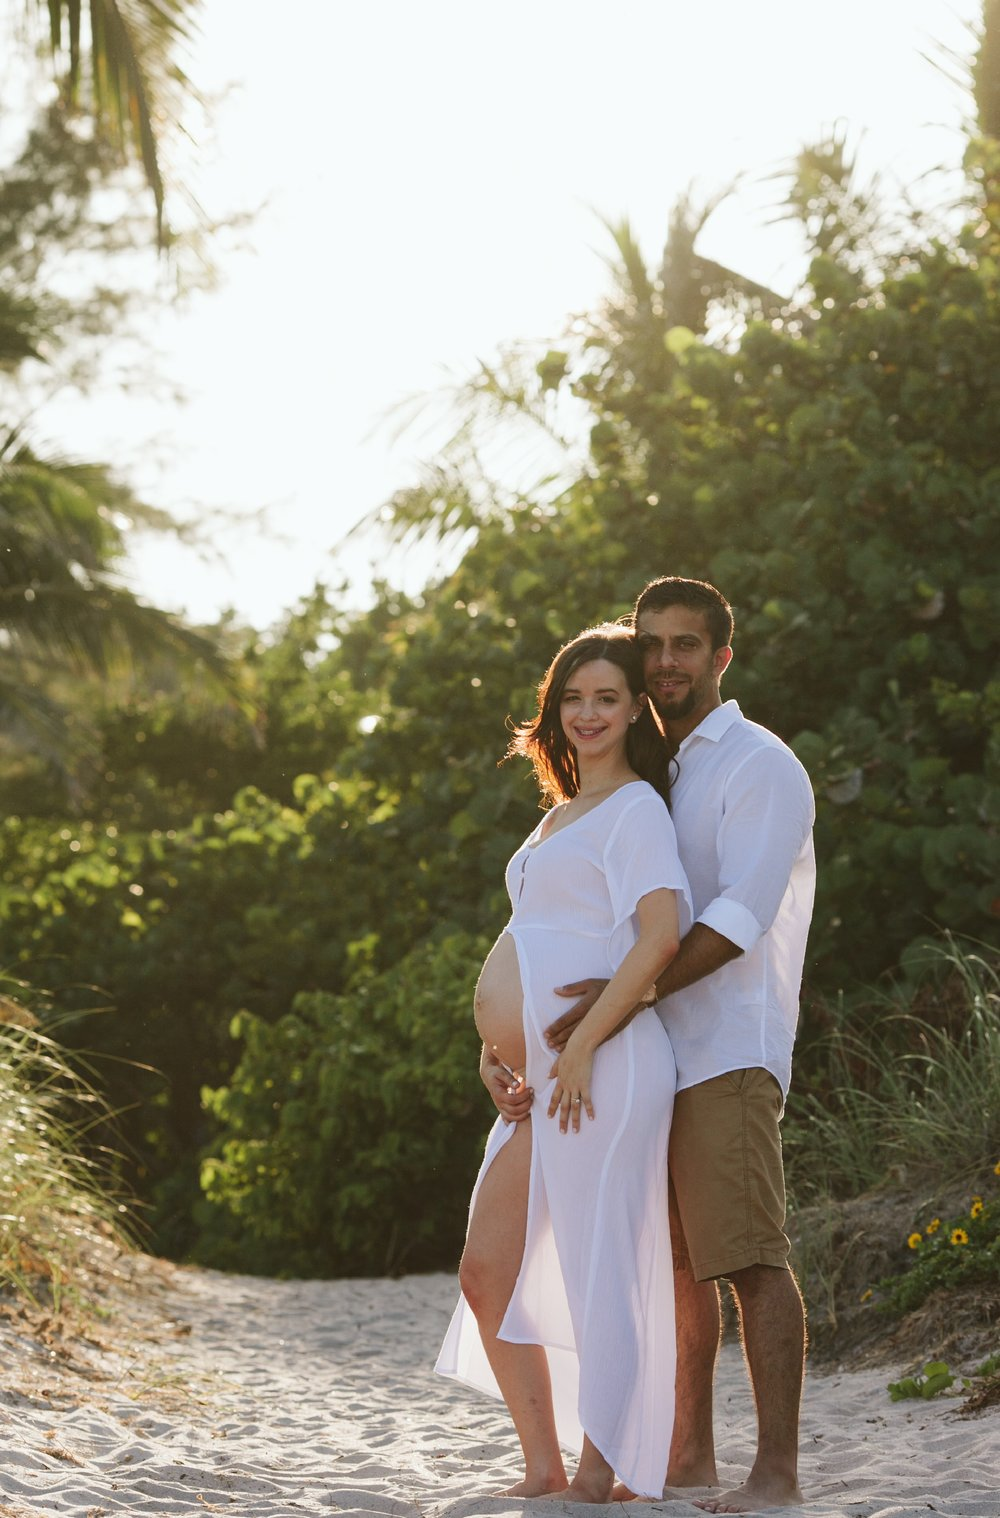 Voilet + Andy Maternity Shoot19.jpg